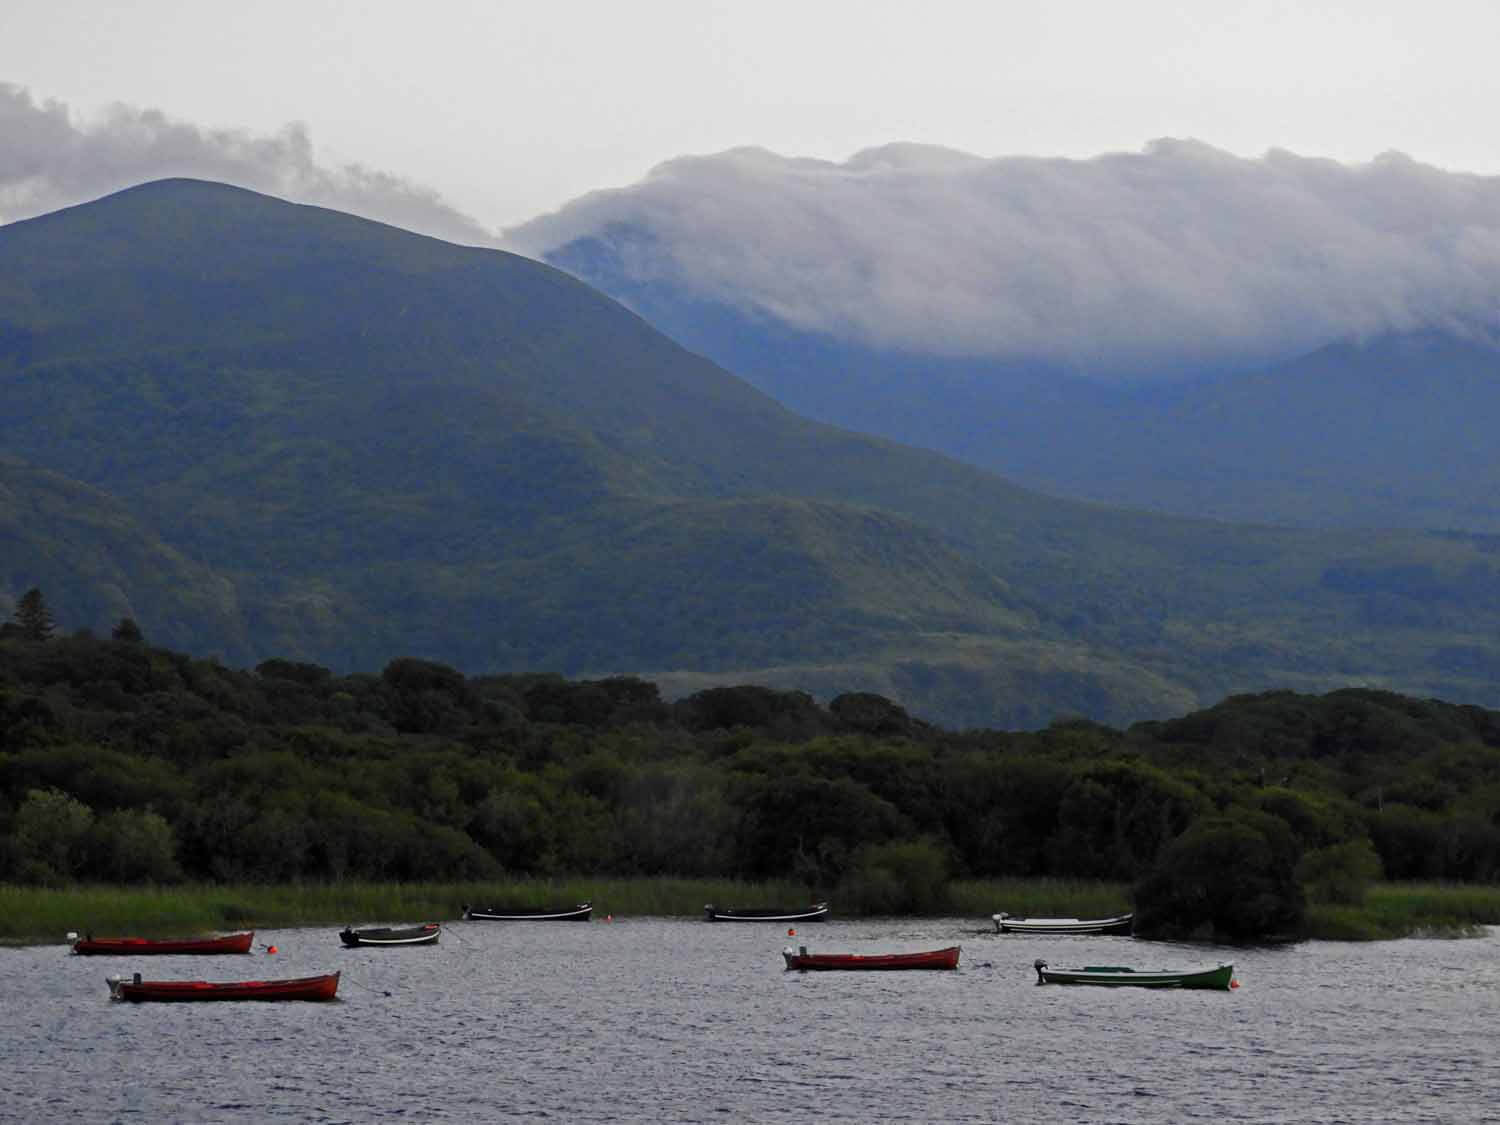 ireland-killarney-muckross-national-park-lake-boats.jpg